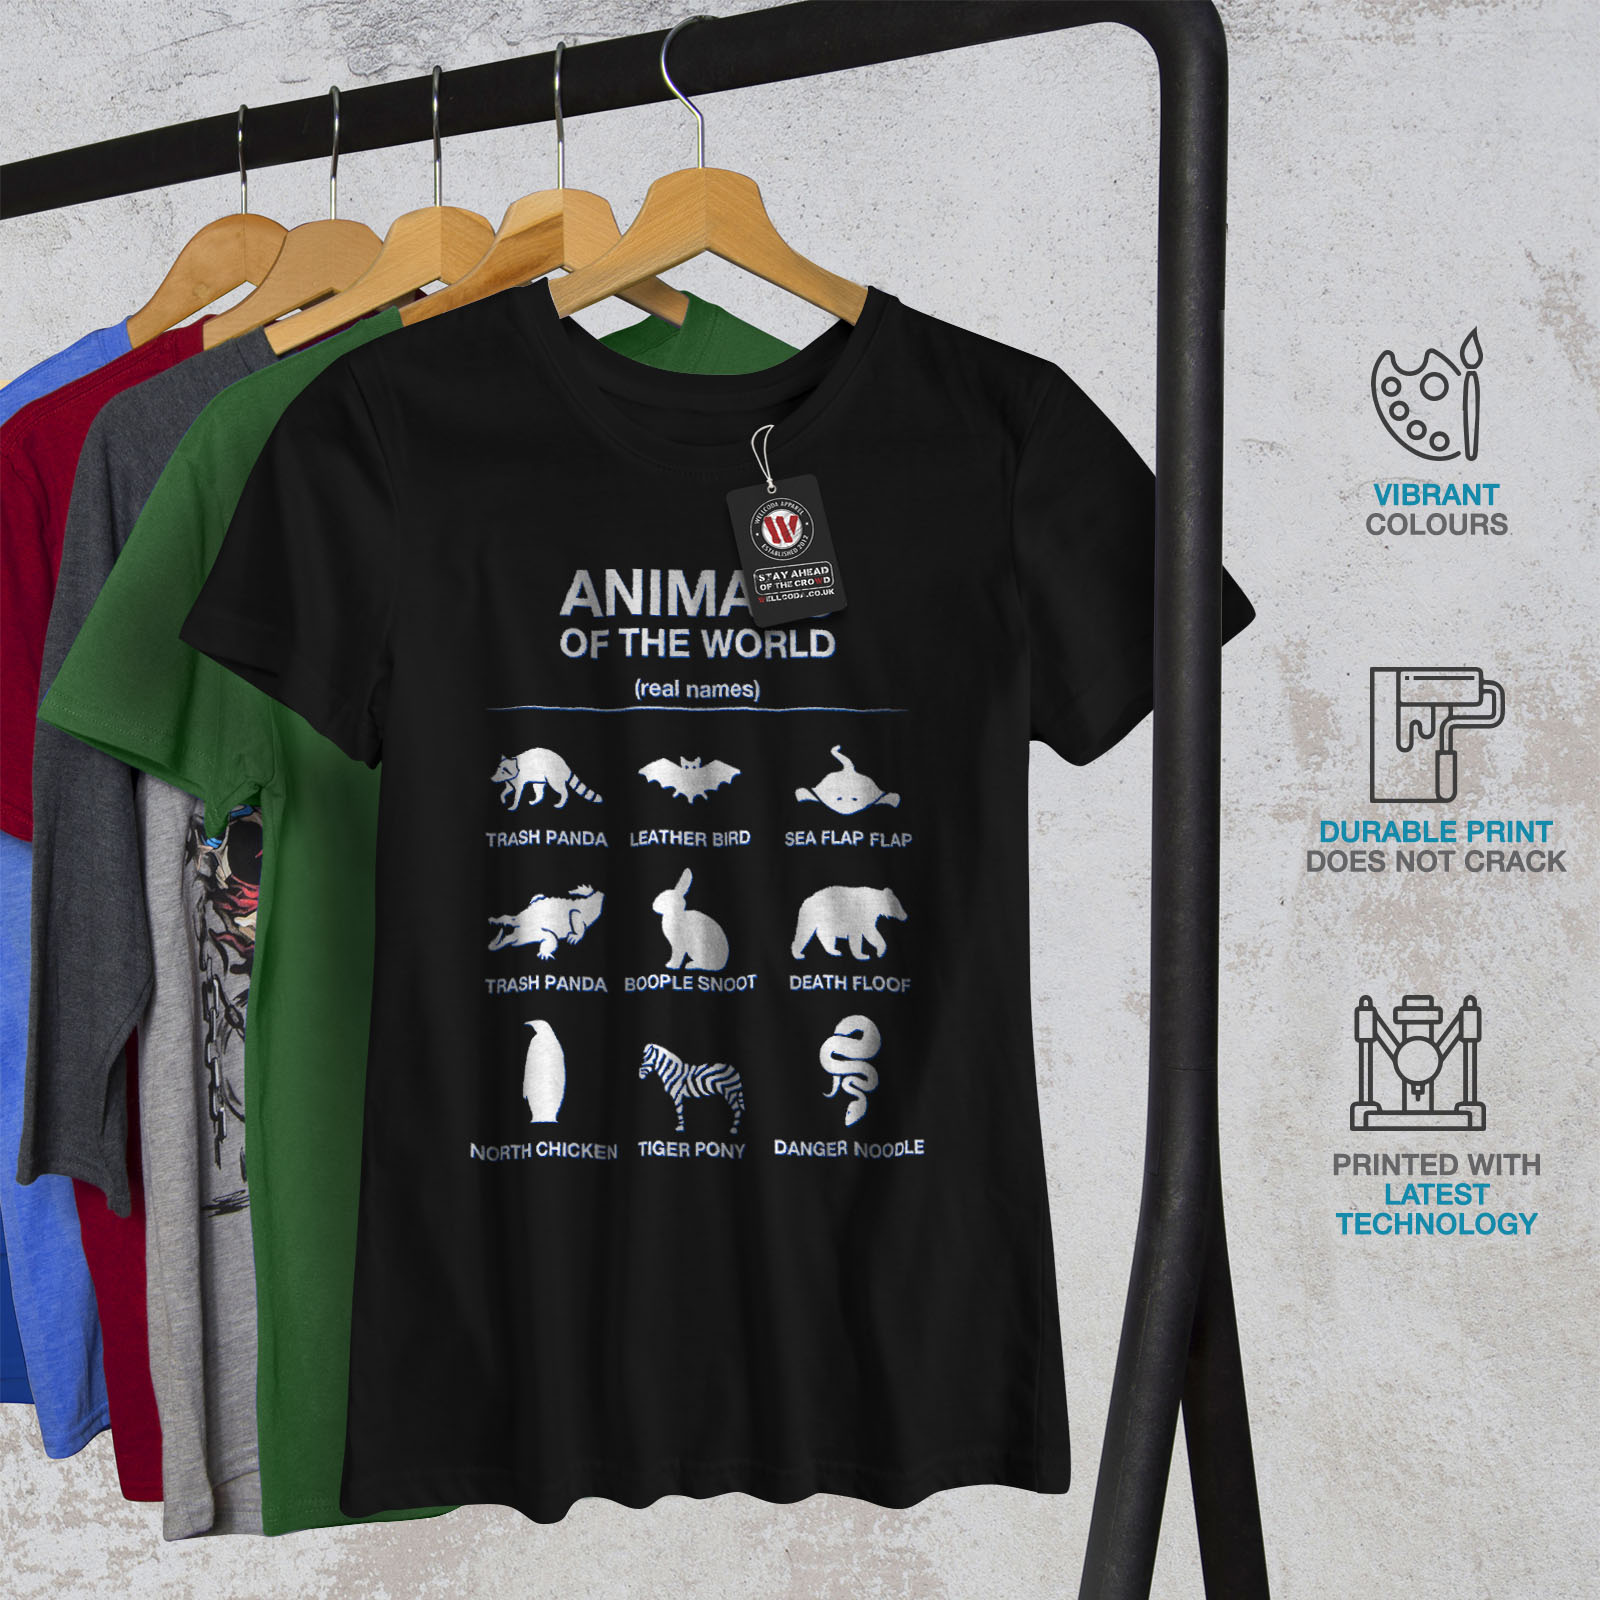 Details about Wellcoda Animals Funny Cute Womens T-shirt, Biology Casual  Design Printed Tee